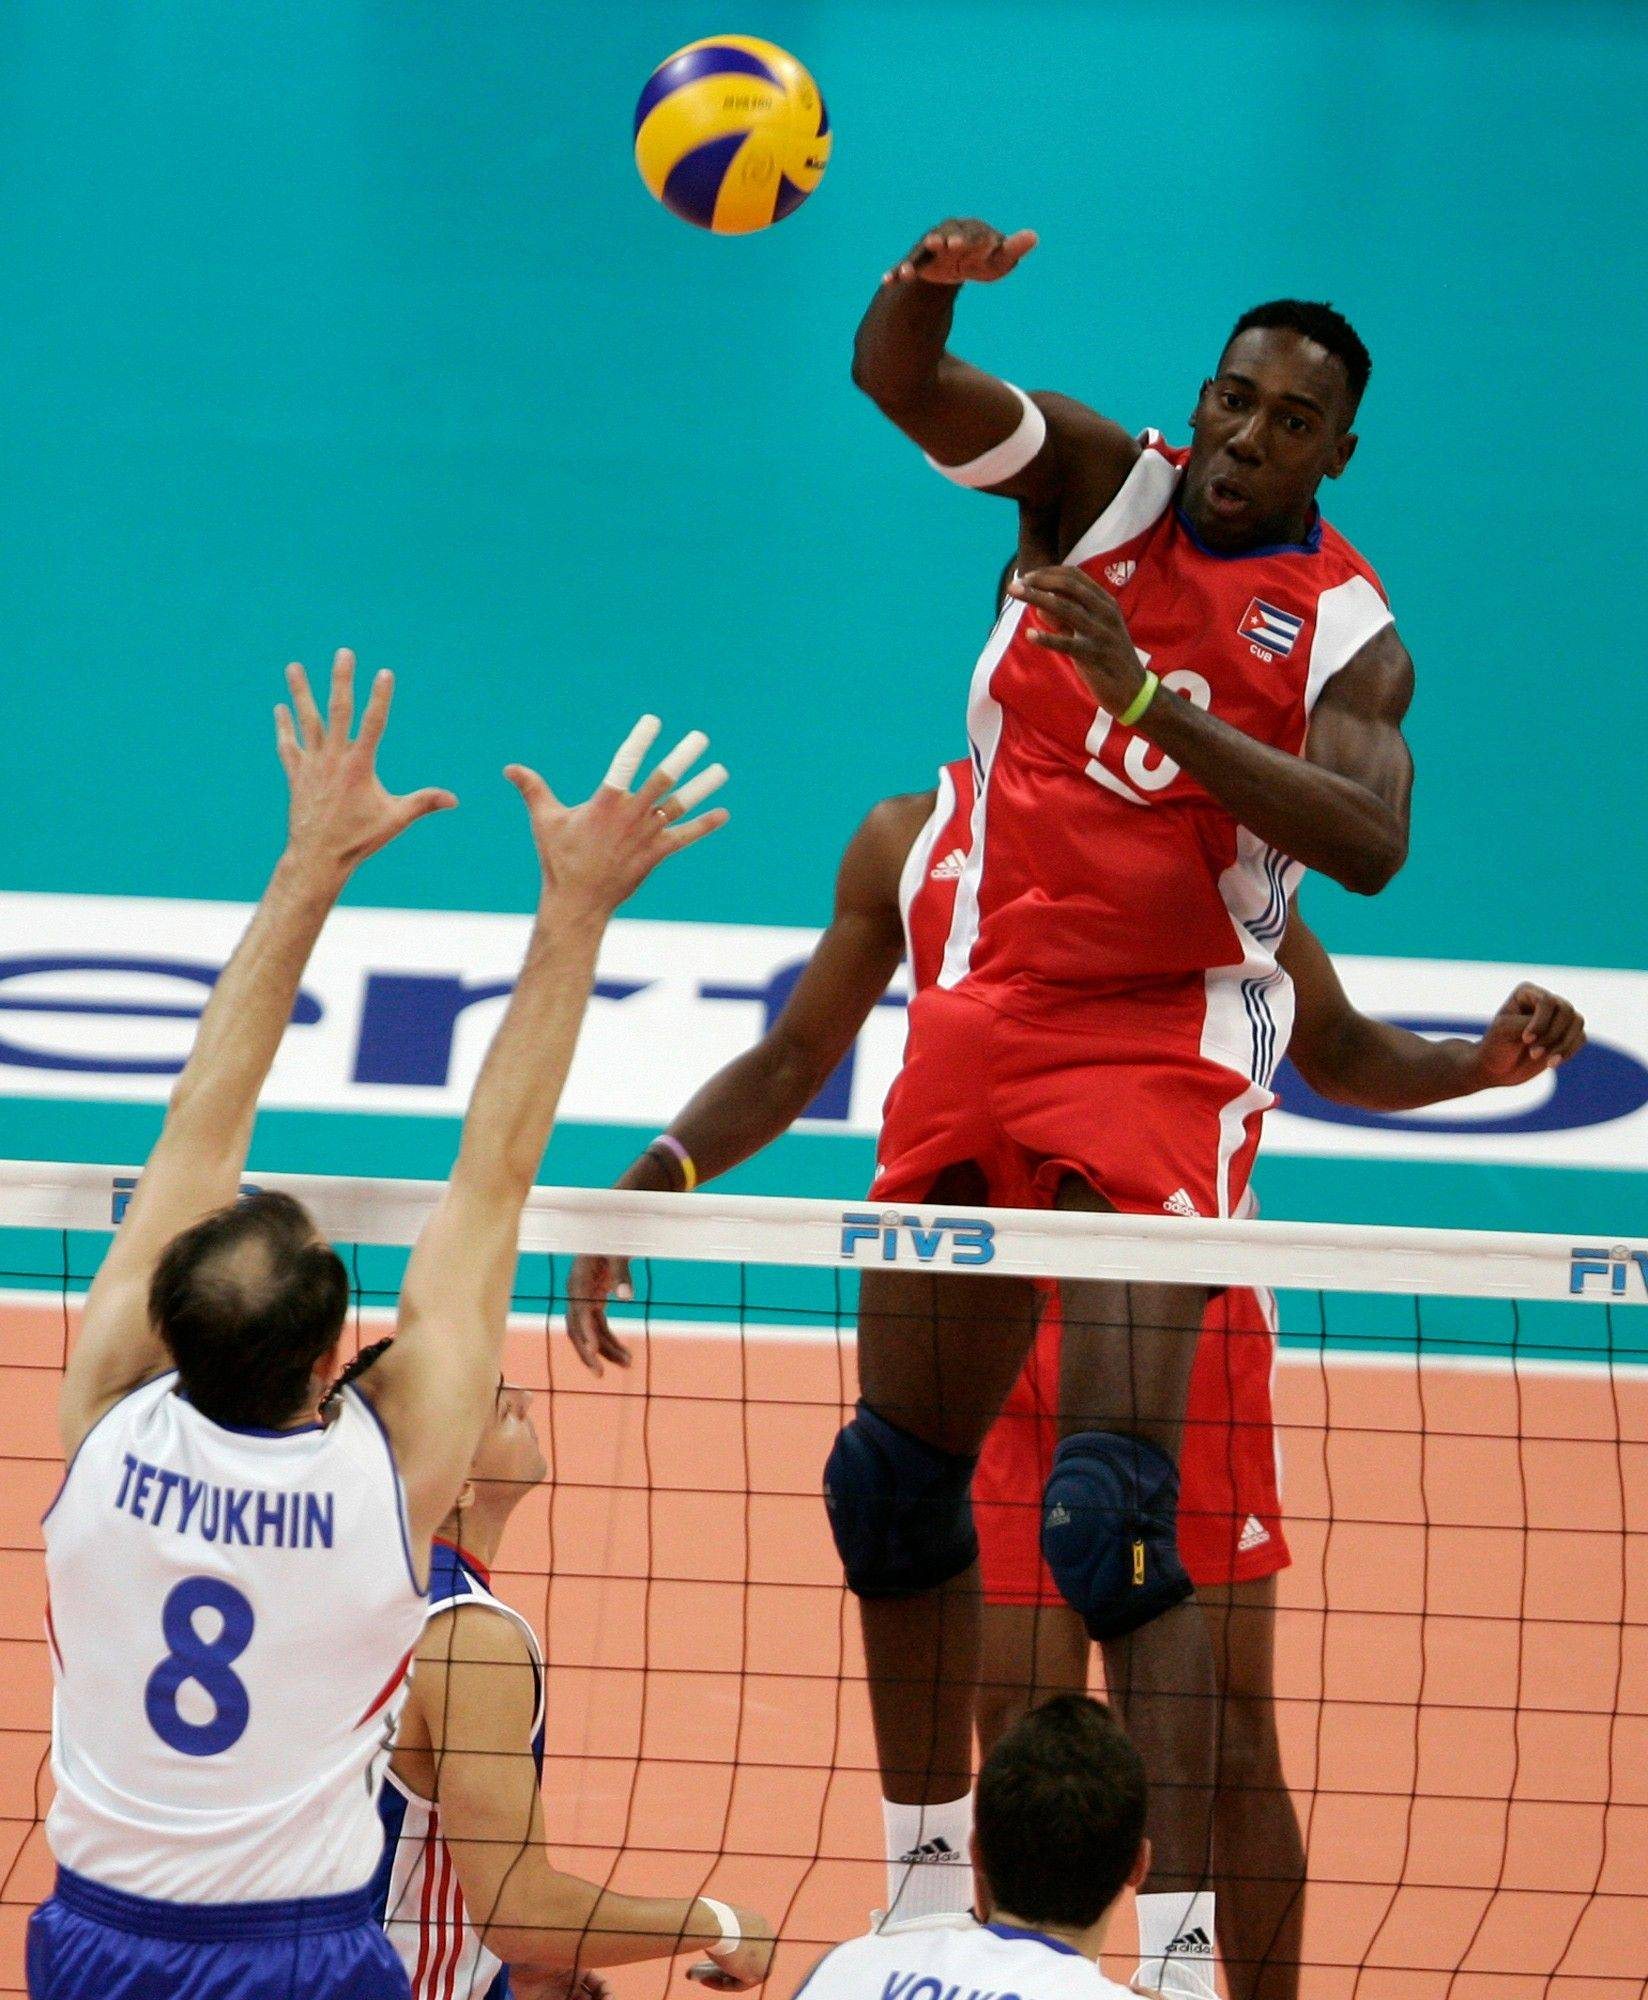 Cuba's Roberlandy Simon, right, spikes the ball at Russia's Sergey Tetyukhin, left, during the Final Round of the 2009 FIVB World League Volleyball bronze medal match, in Belgrade, Serbia. Cuban state newspapers Granma and Juventud Rebelde reported that captain Roberlandy Simon and players Joandry Leal and Raydel Hierrezuelo had quit the national volleyball team that was runner-up at the 2010 World Championship in Italy. The reports said they left the team for personal reasons, but their absence sparked rumors they wanted to defect. Hierrezuelo has since returned to the squad. Cuba has always had a problem keeping talent on the island, but the exodus in sports and entertainment seems to be growing.